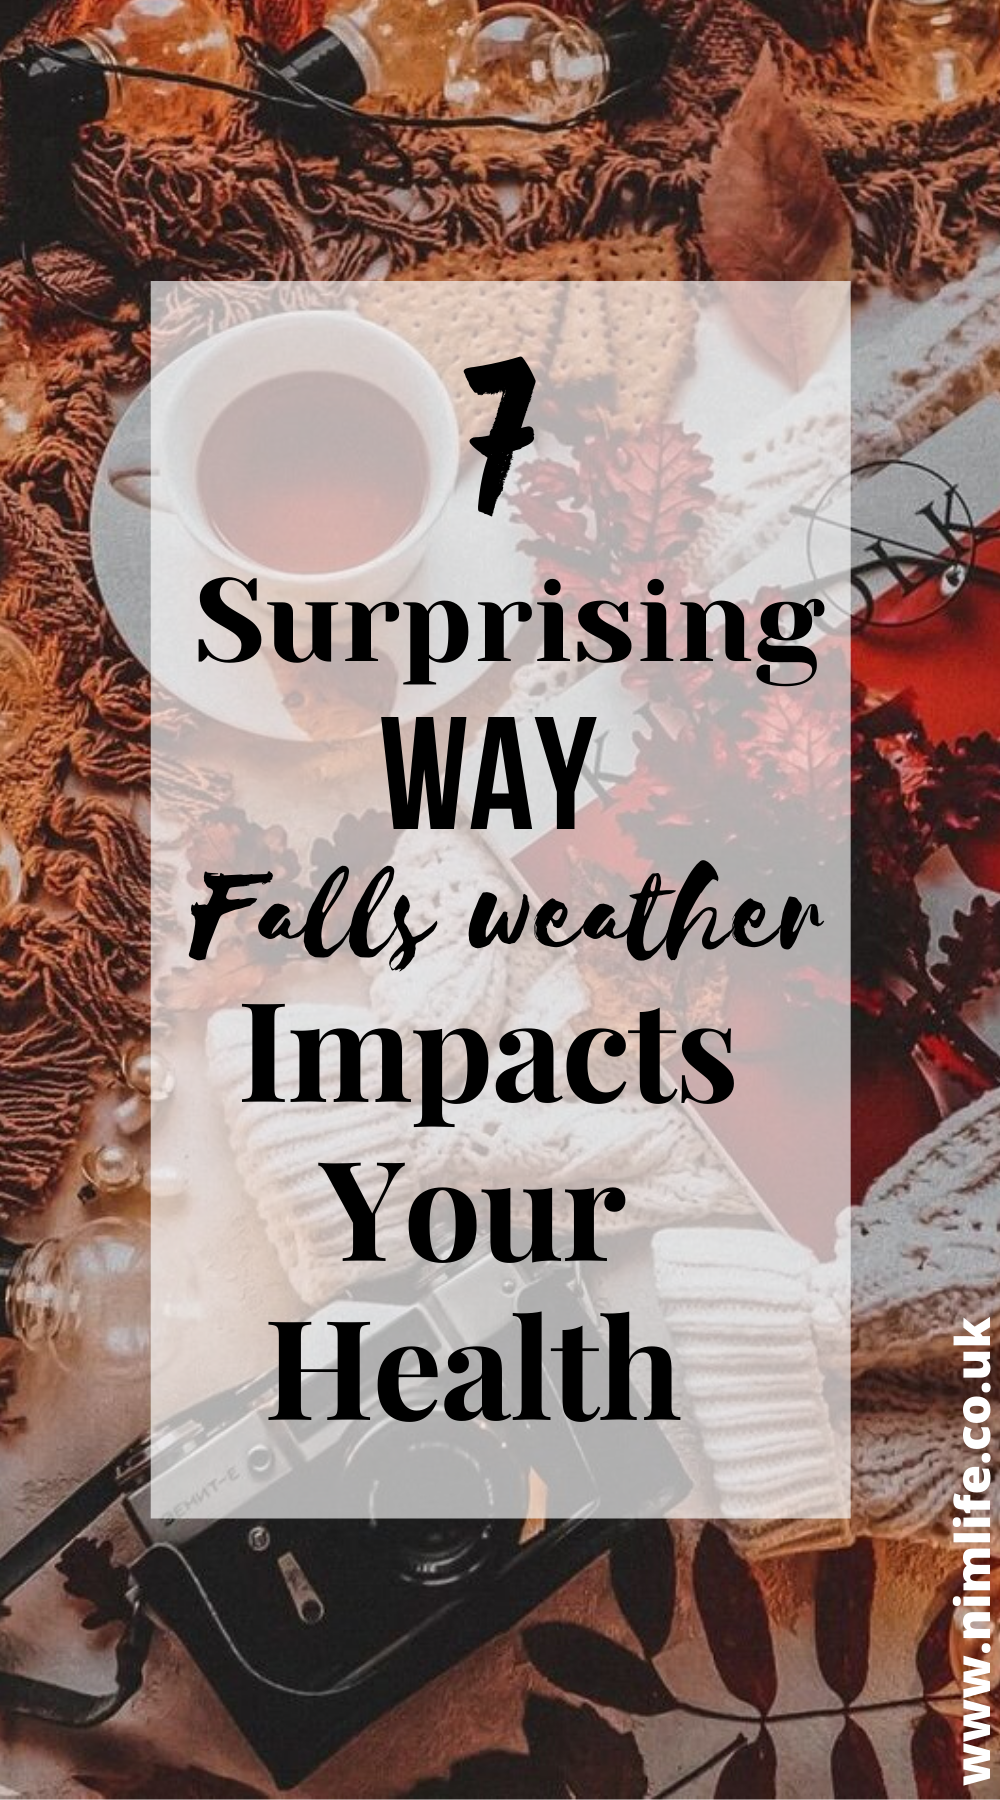 7 Surprising Way Falls Weather Impacts Your Health (2020